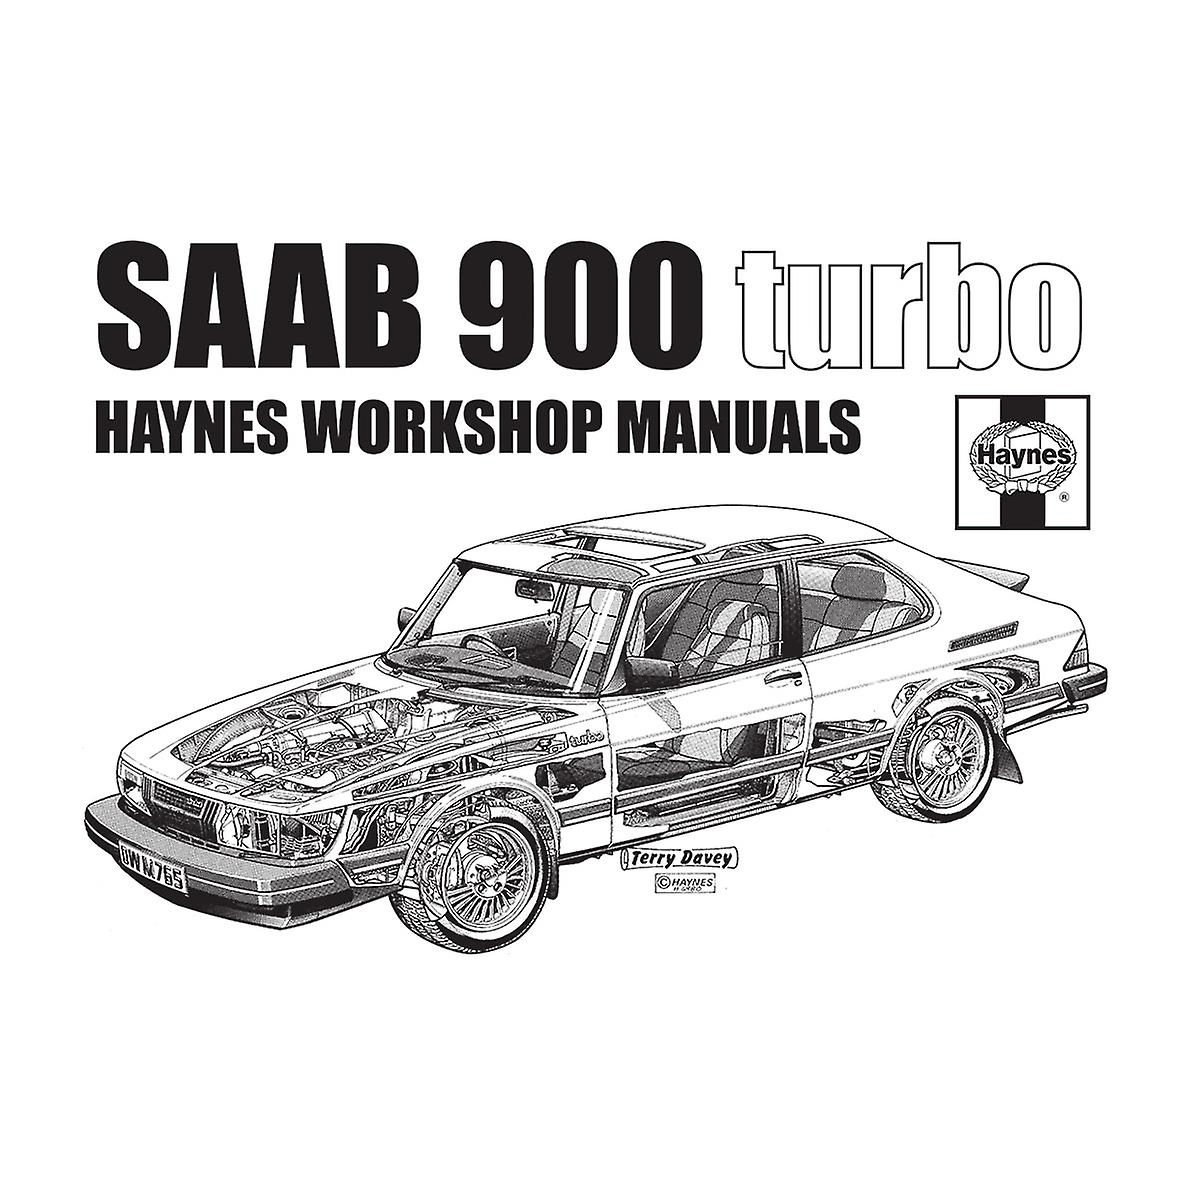 Haynes Workshop Manual 0765 Saab 900 Turbo Black Kid's